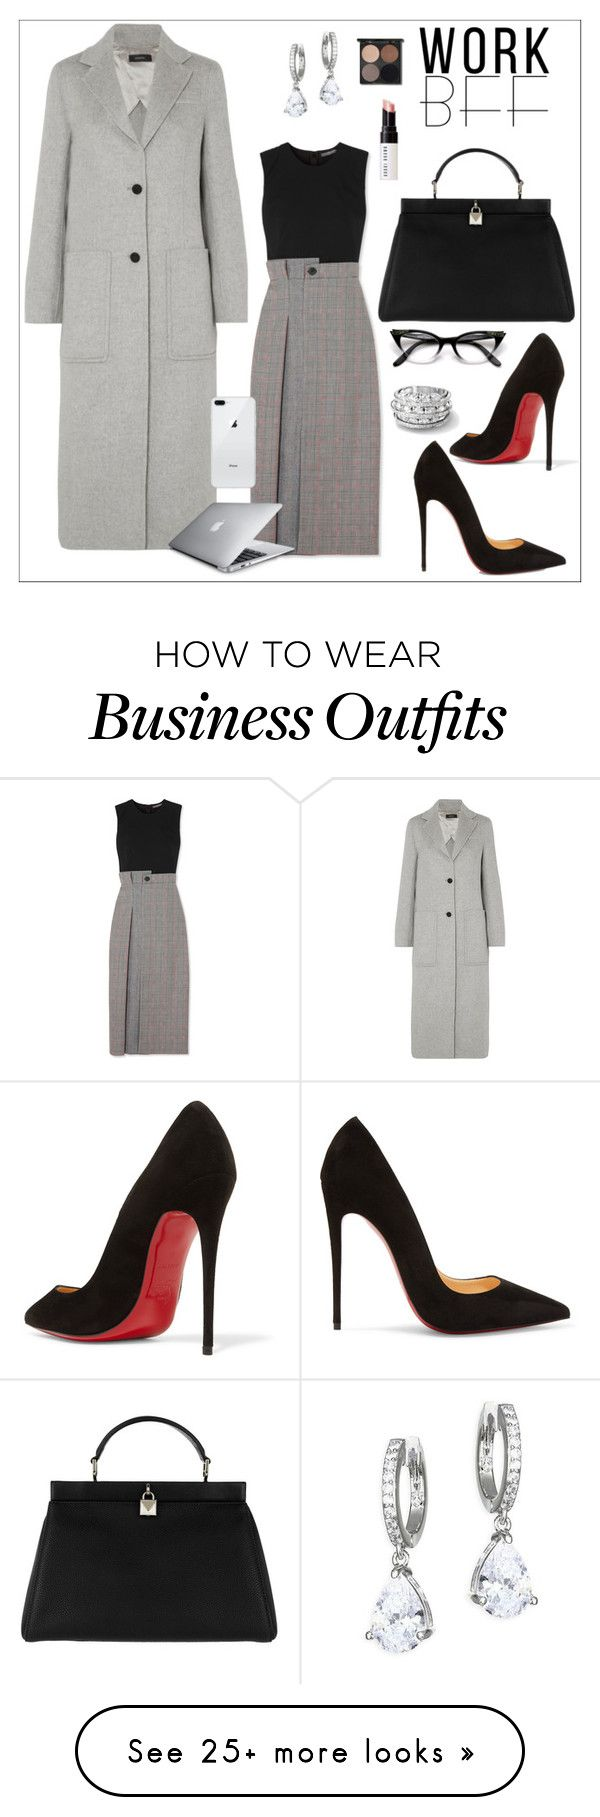 """WORK STYLE CONTEST"" by davide-mazzonello on Polyvore featuring Joseph, Alexander McQueen, Christian Louboutin, Michael Kors, Kate Spade, Bobbi Brown Cosmetics, WorkWear, AlexanderMcQueen, christianlouboutin and JOSEPHMARVIL"